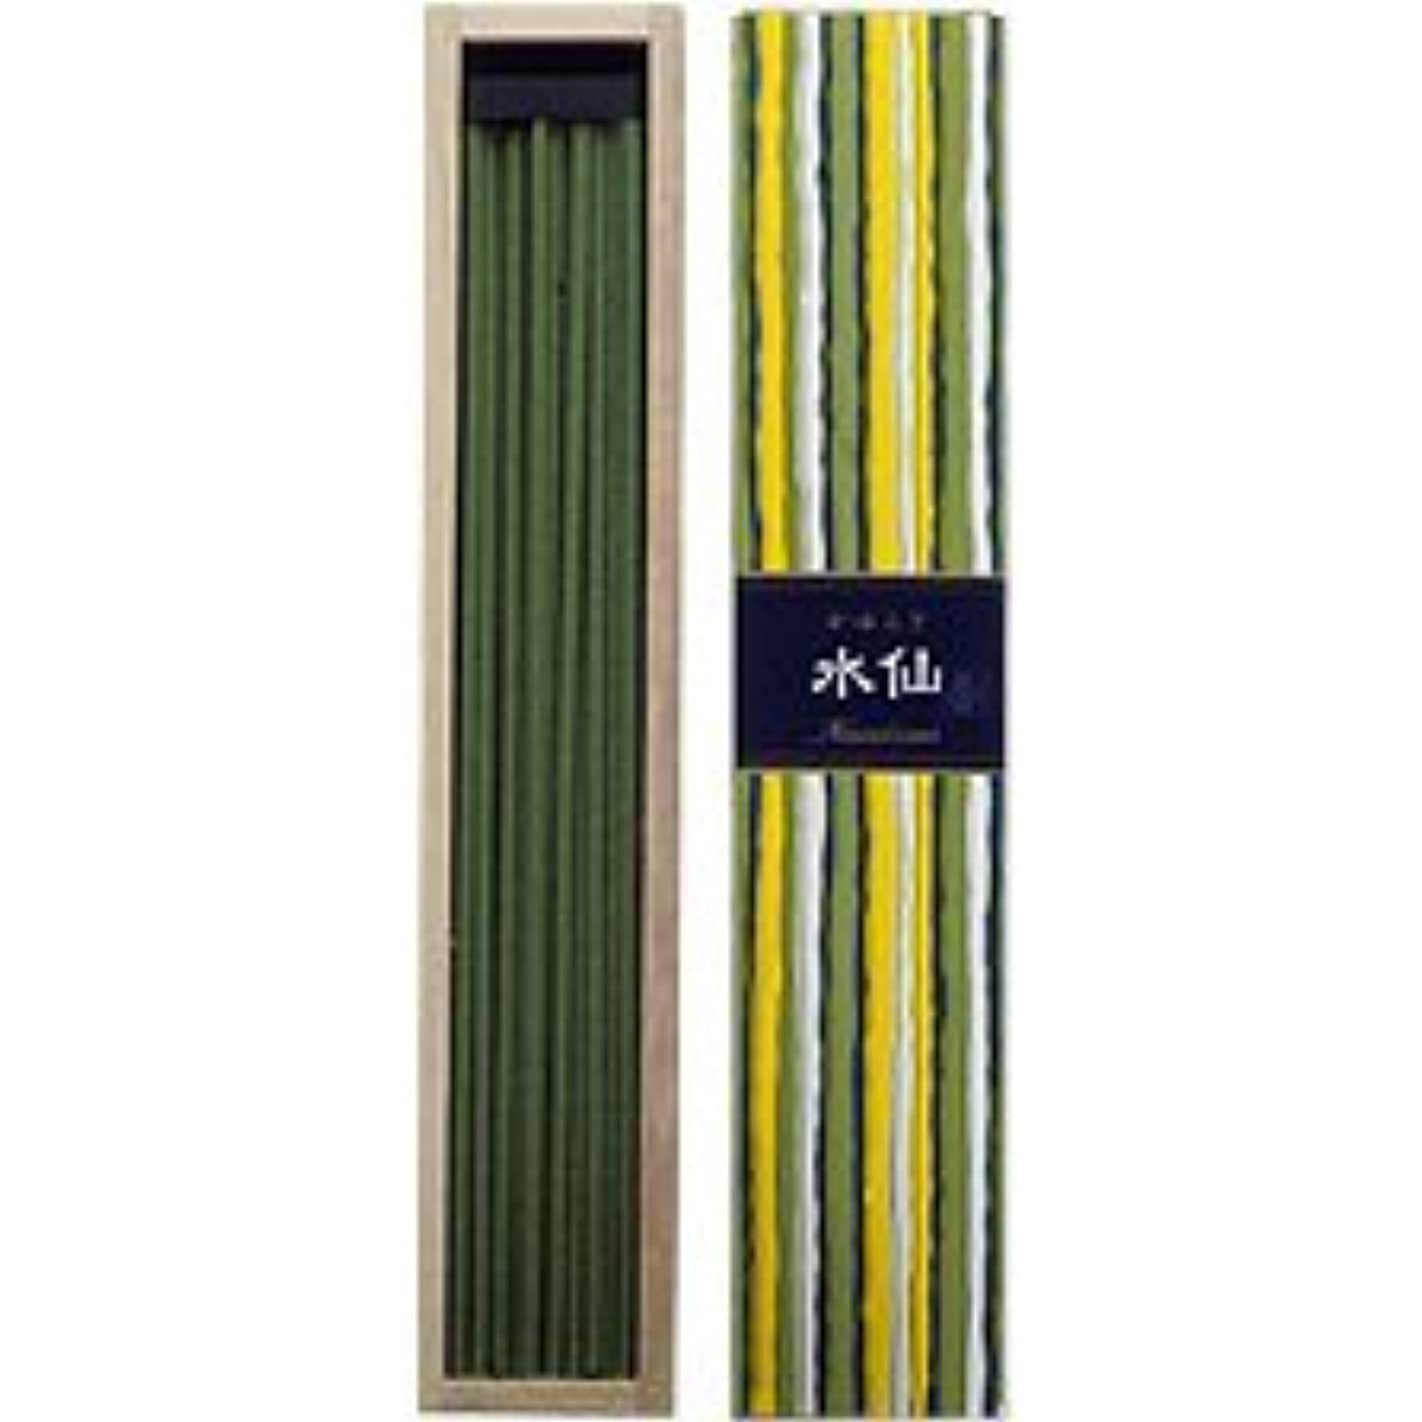 上がるドキドキ感情Kayuragi Incense Sticks – Narcissus